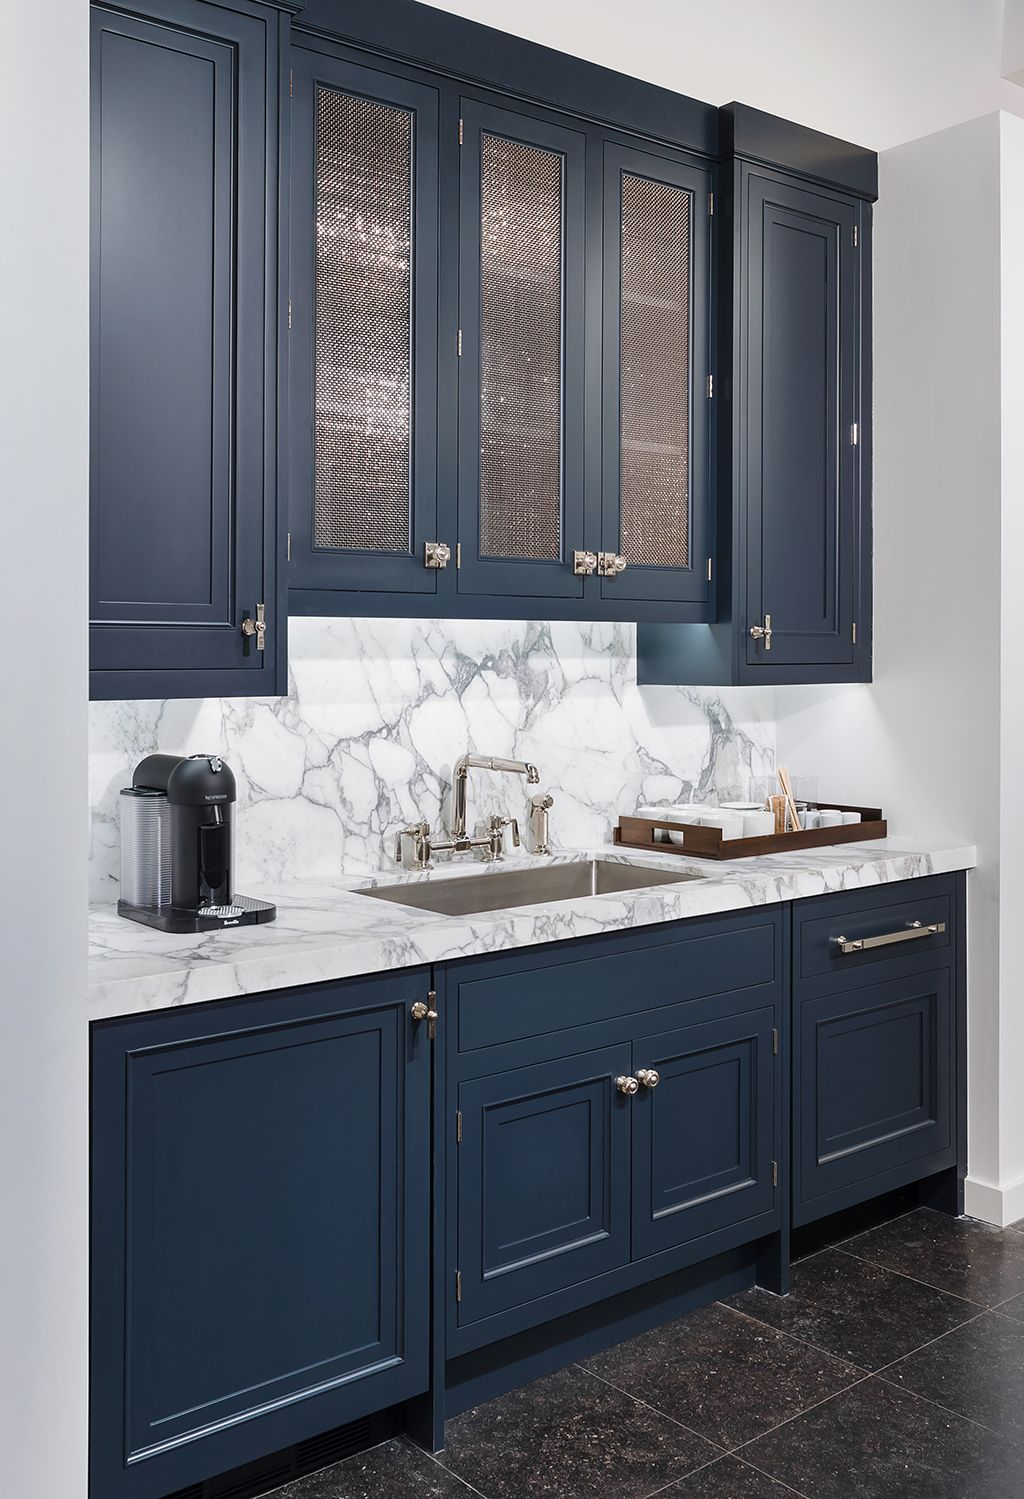 Custom Cabinetry Overview Waterworks Blue Kitchen Cabinets Kitchen Cabinet Design Kitchen Faucet